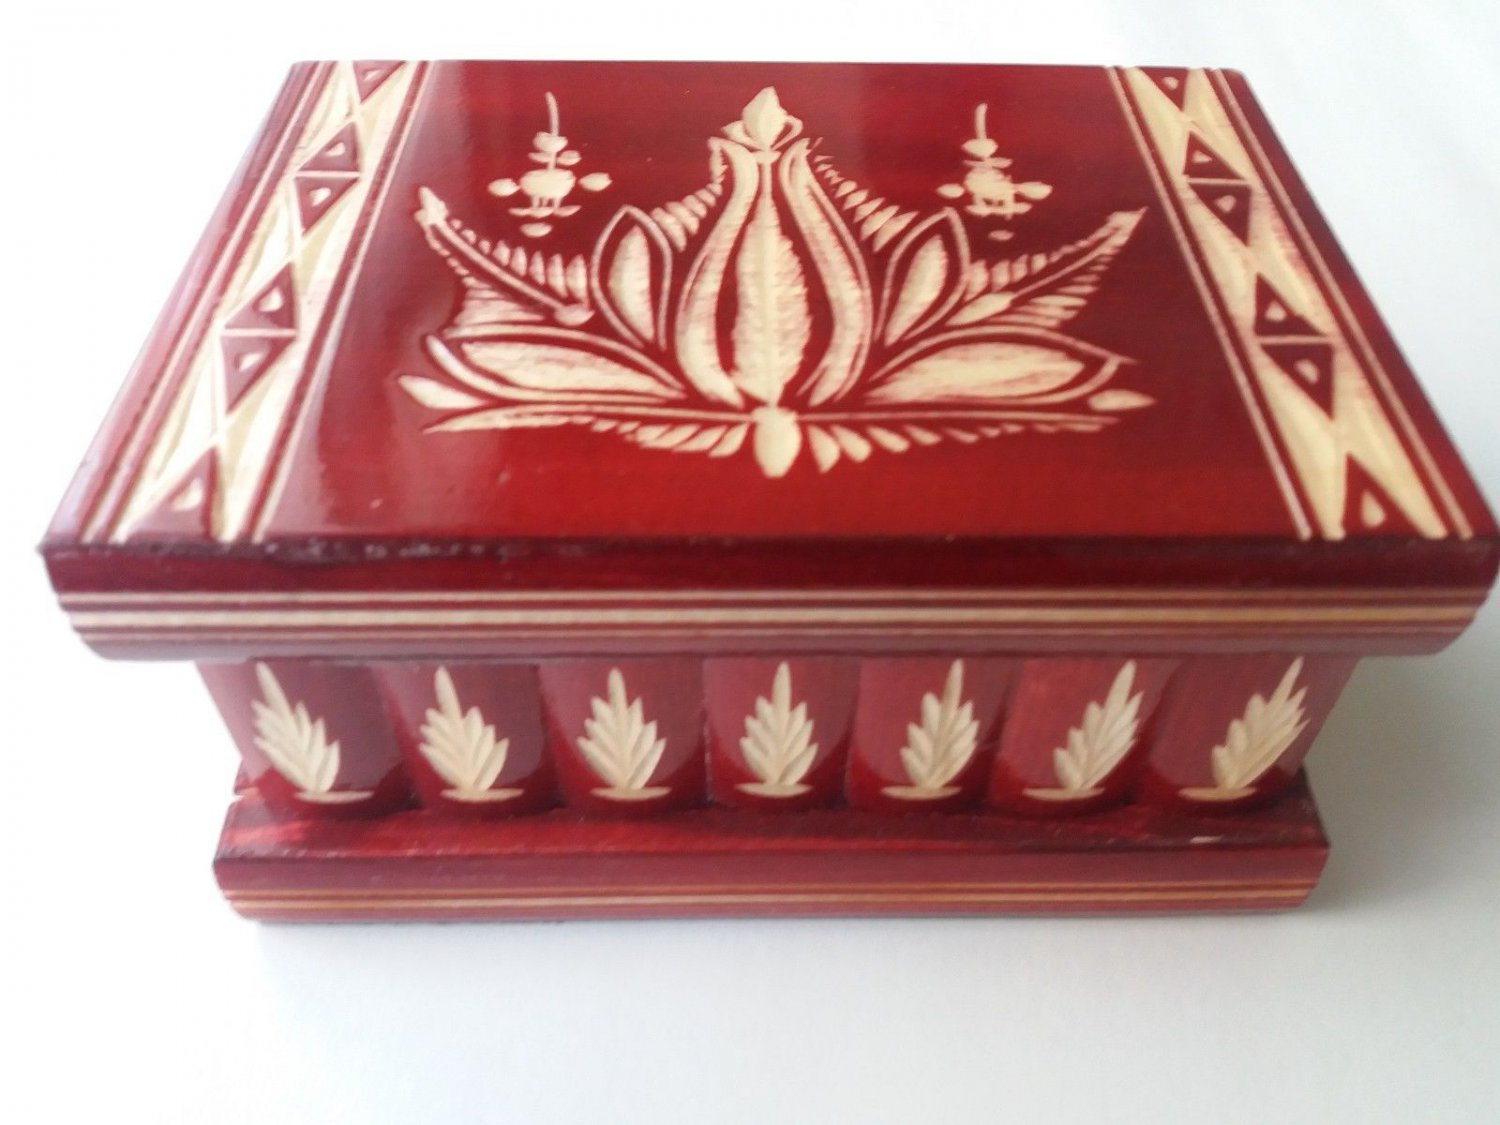 New special red wooden wizard jewelry puzzle magic box brain teaser trinket case